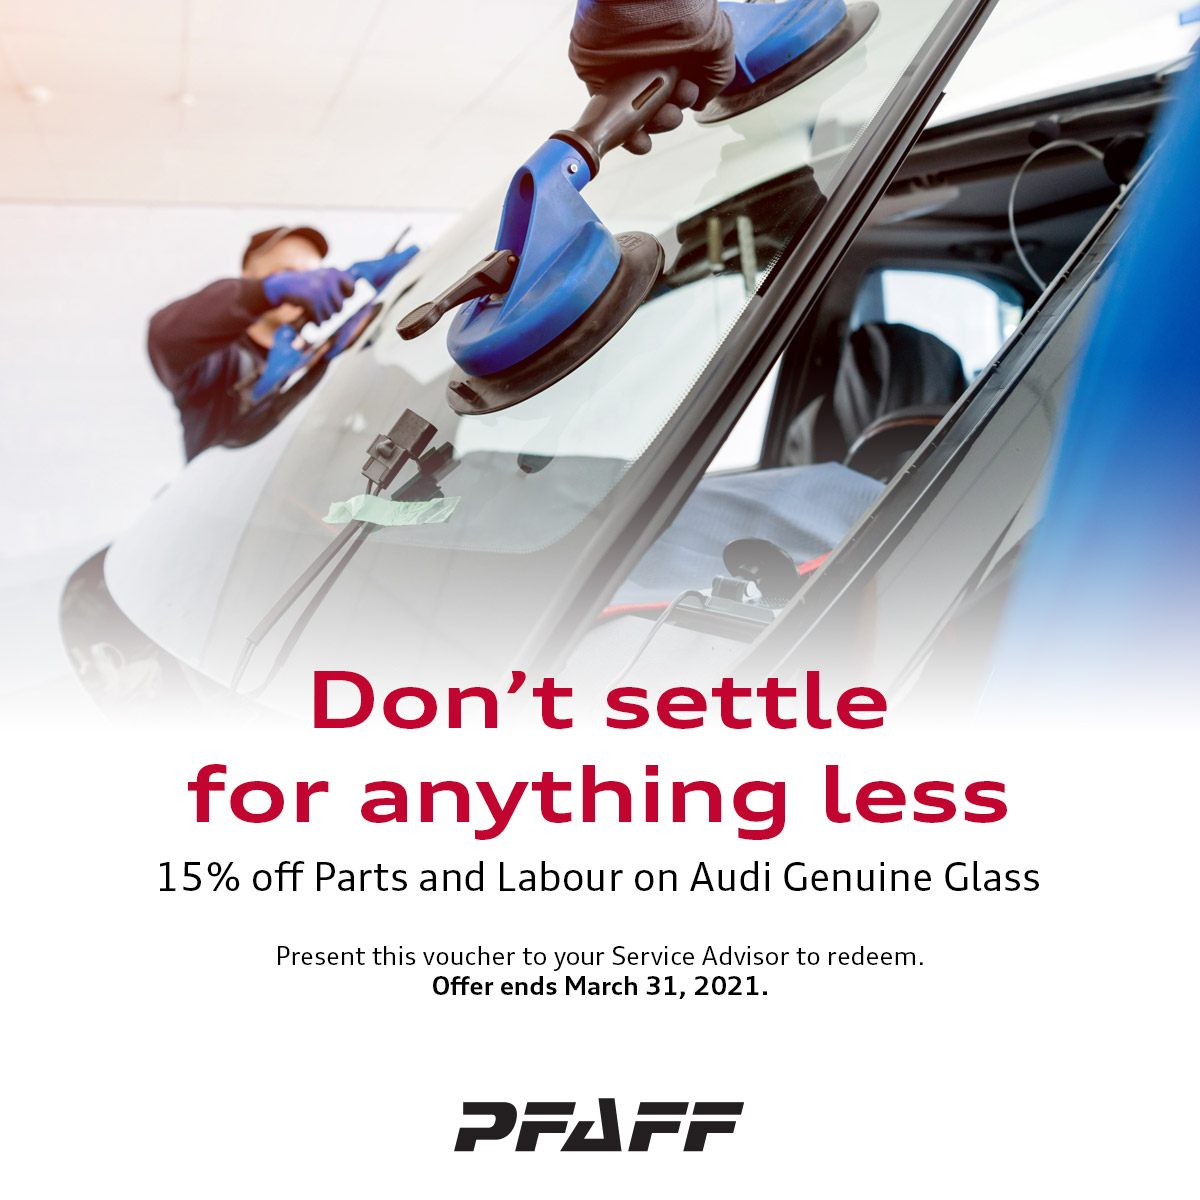 15% off Parts and Labour on Audi Genuine Glass